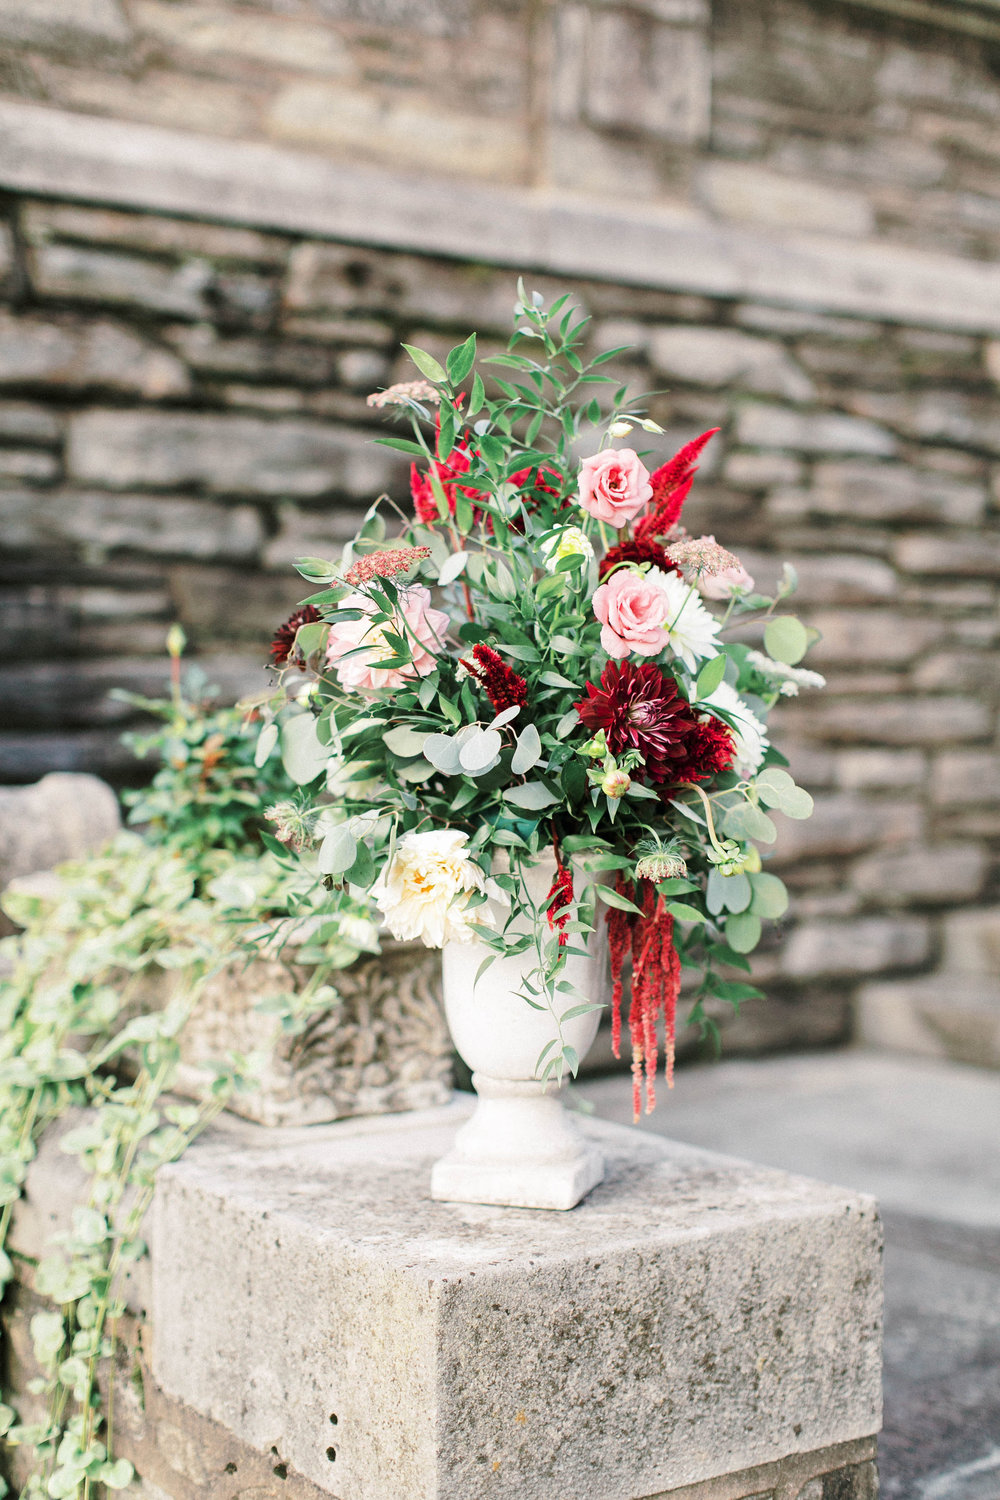 These tall ceramic urns make the perfect statement altar pieces to be used up front or just to bring color to the surrounding venue.